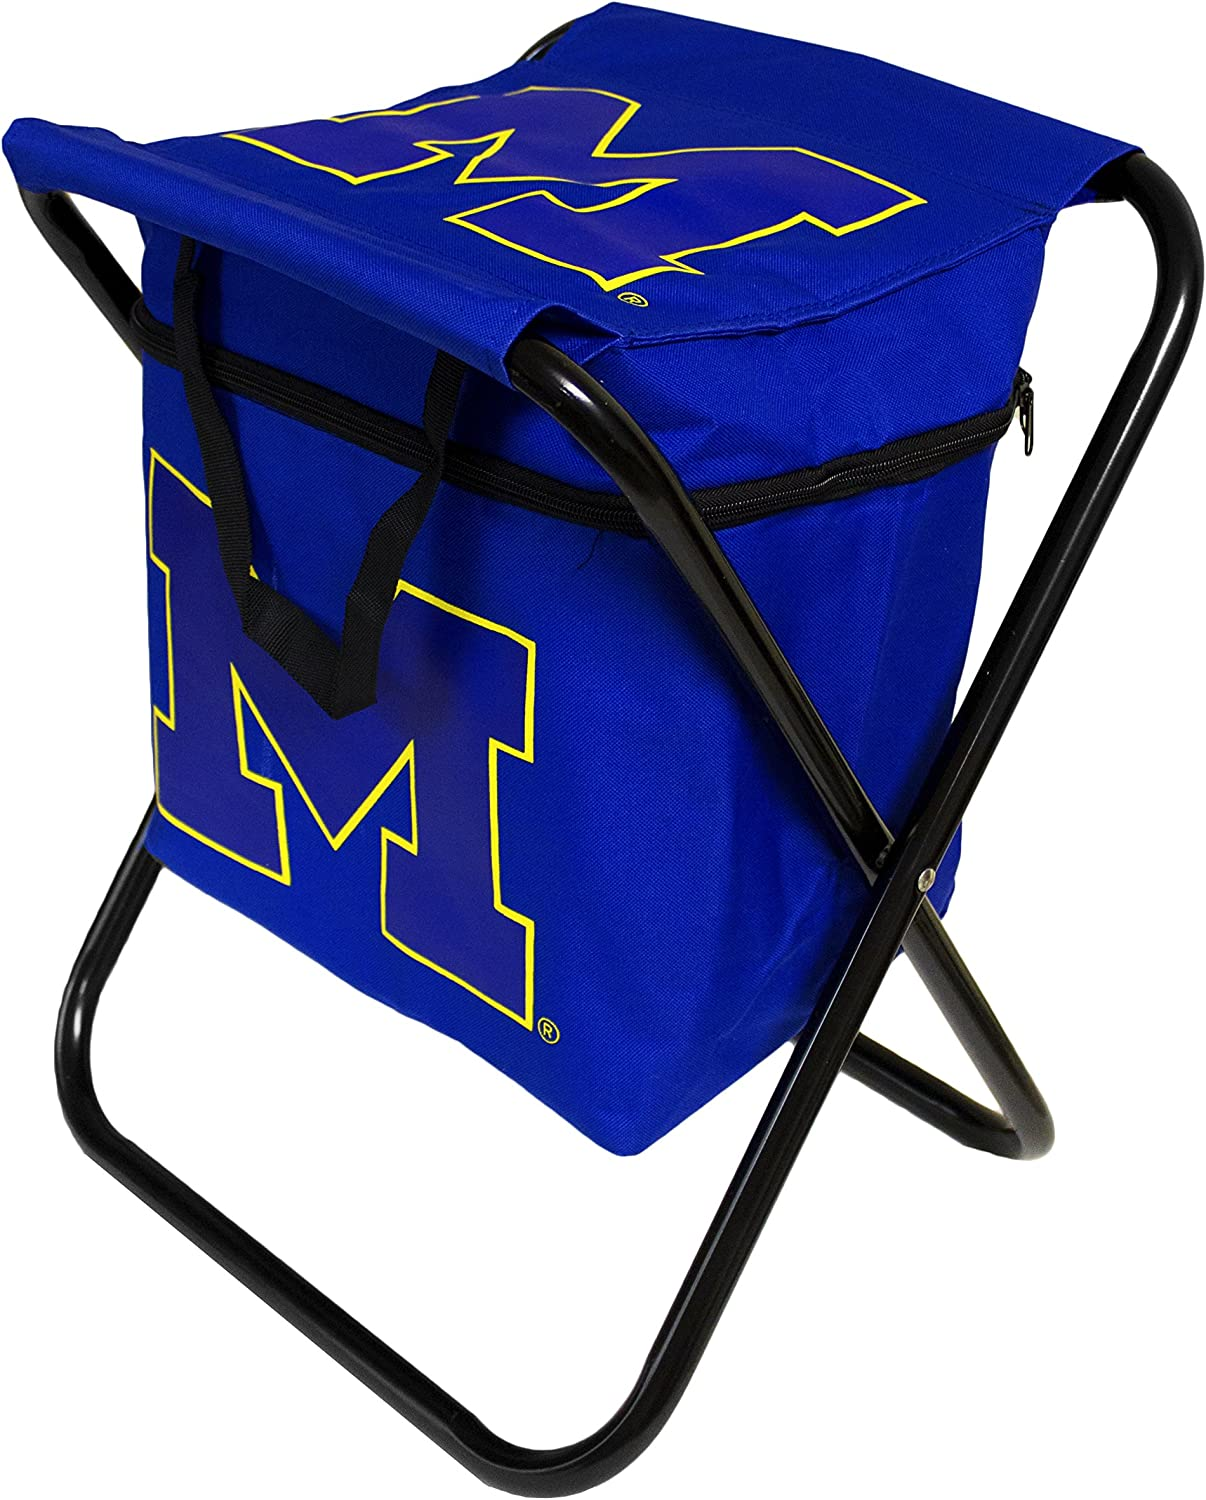 R and Imports NCAA Same day shipping Chair Quad Cheap bargain Cooler